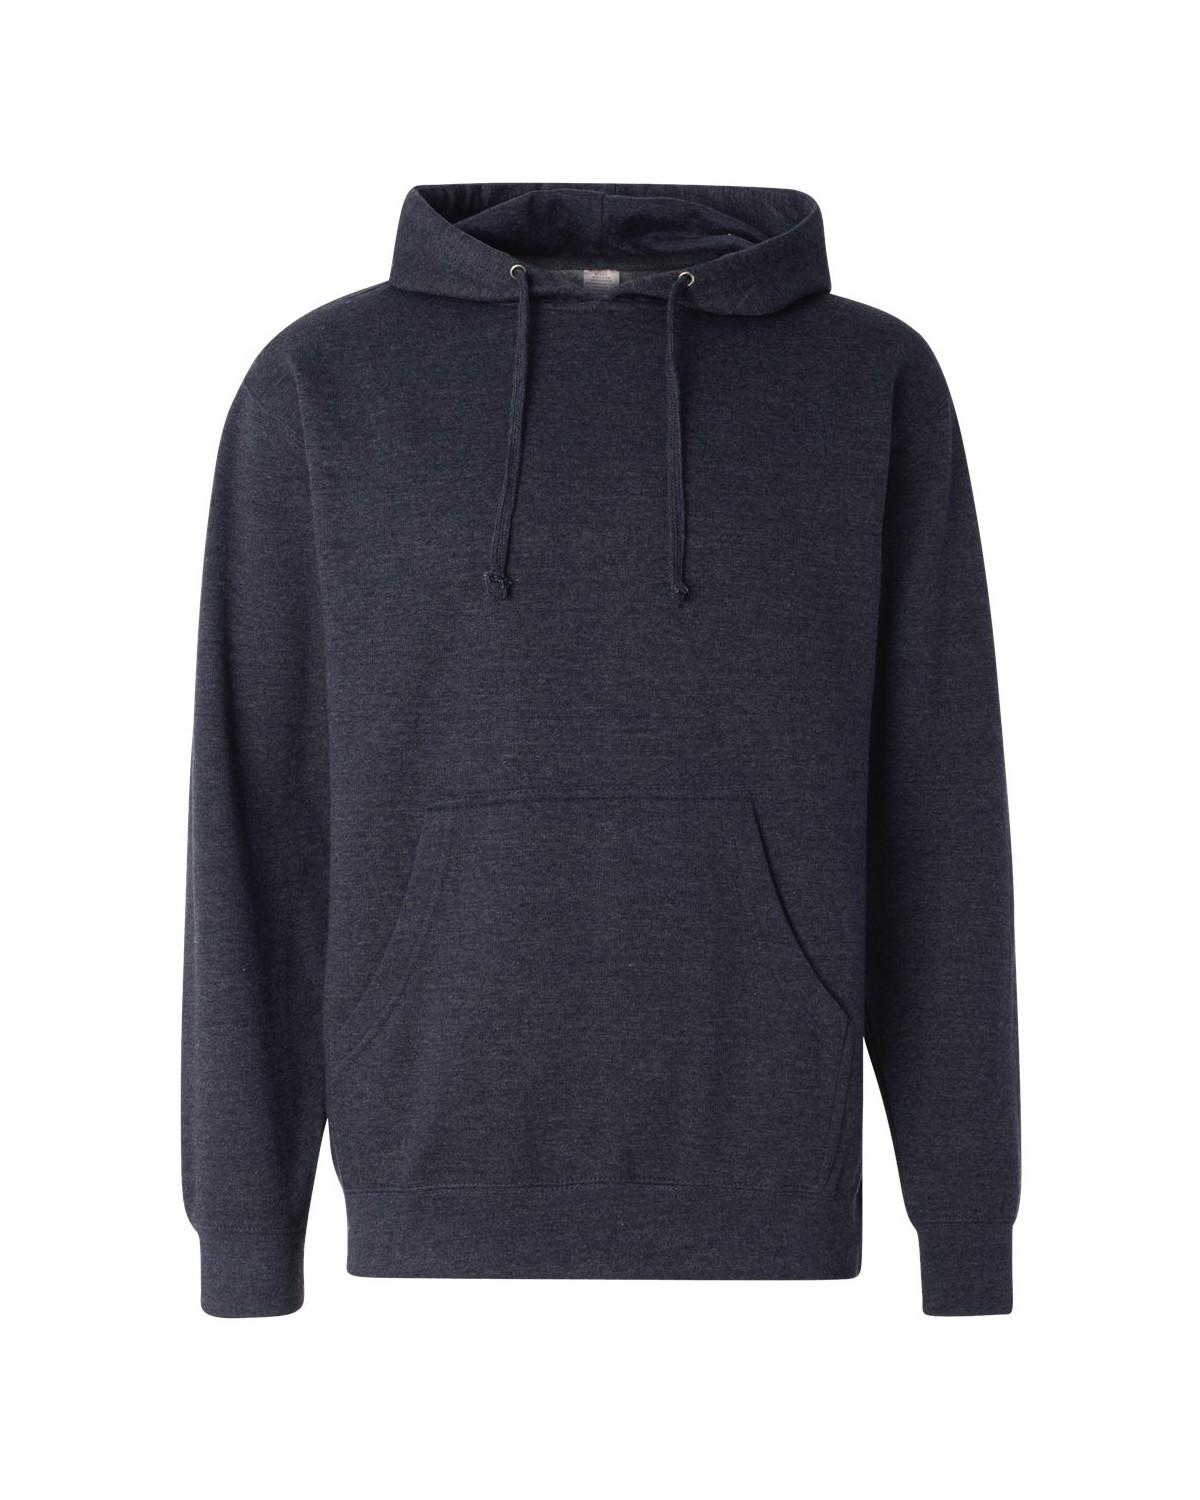 SS4500 Independent Trading Co. Classic Navy Heather